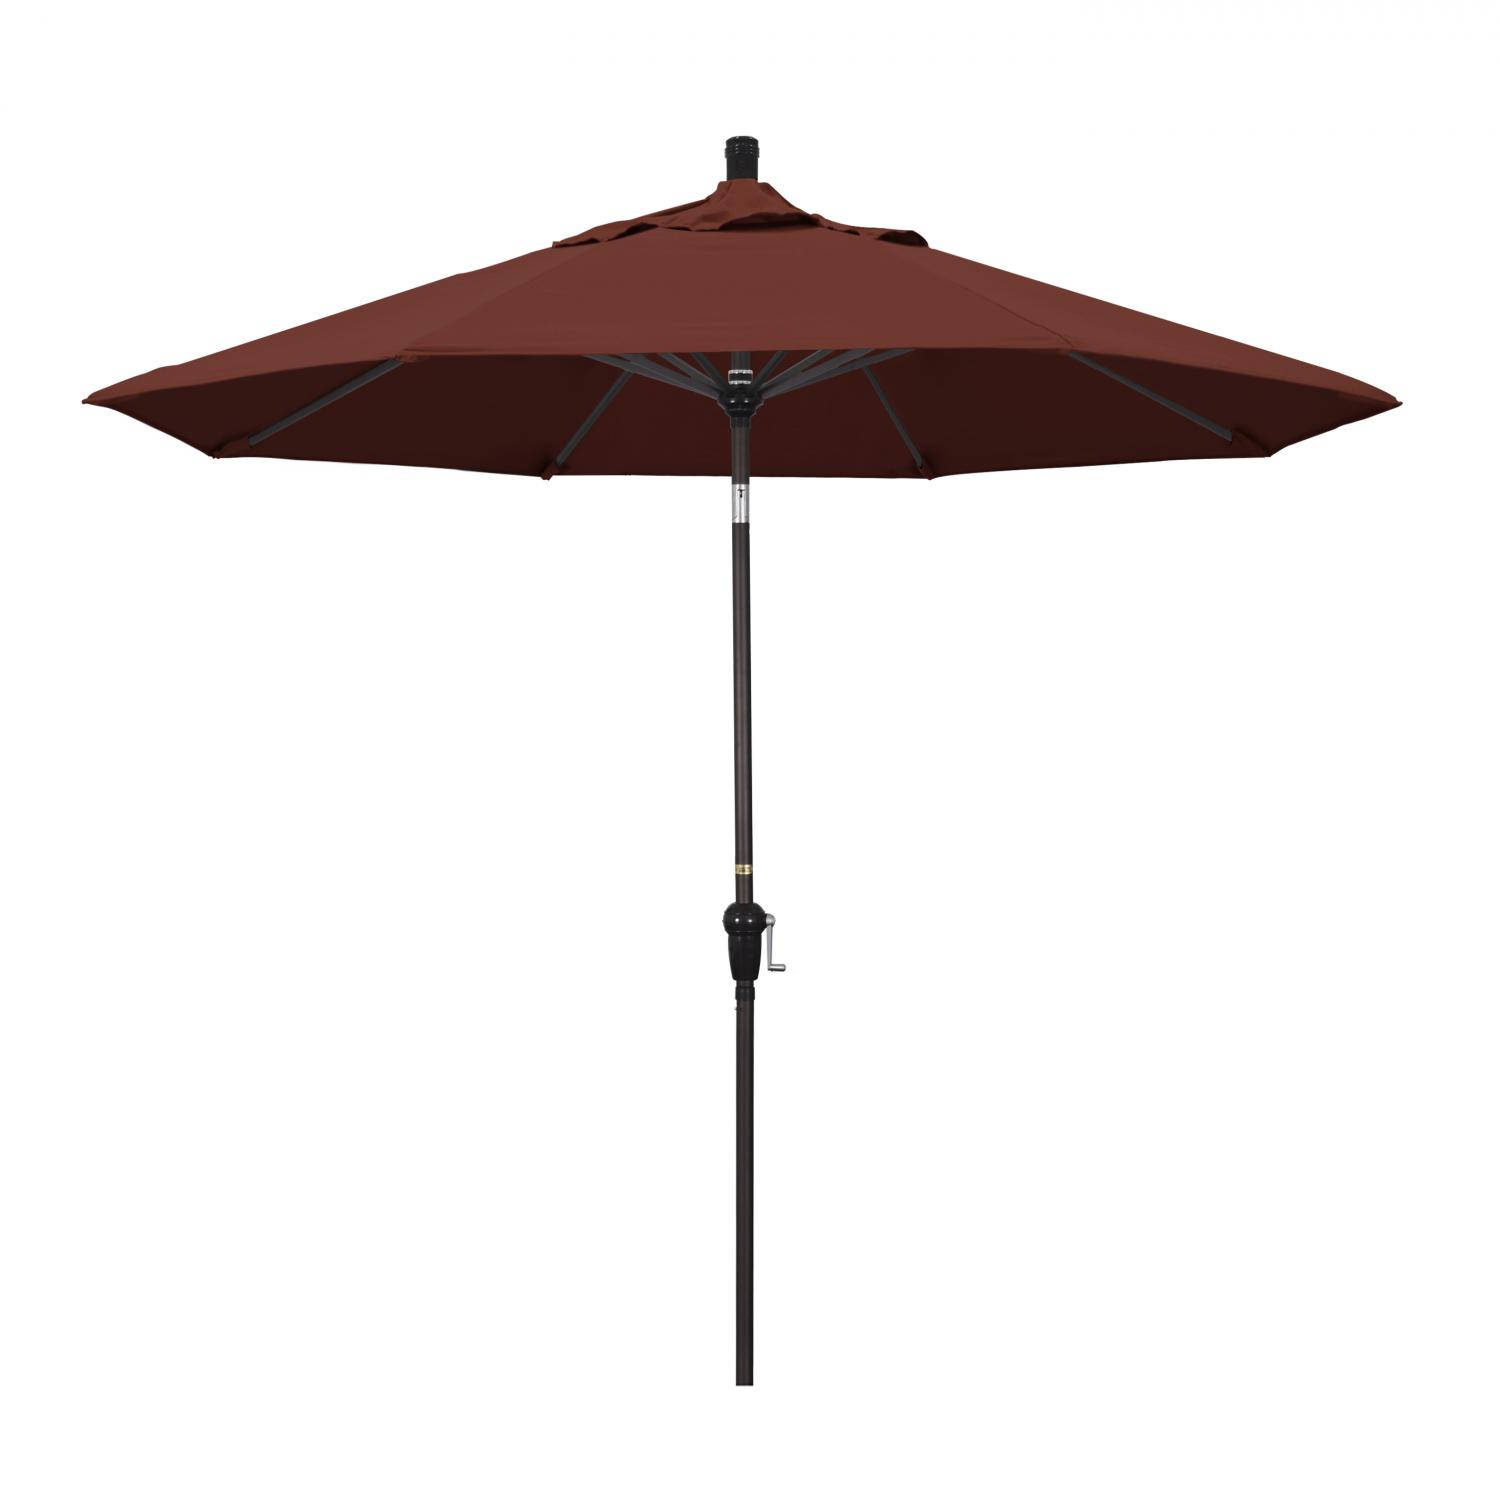 California Umbrella 9 Ft. Octagonal Aluminum Auto Tilt Patio Umbrella W/ Crank Lift & Aluminum Ribs - Bronze Frame / Sunbrella Canvas Henna Canopy